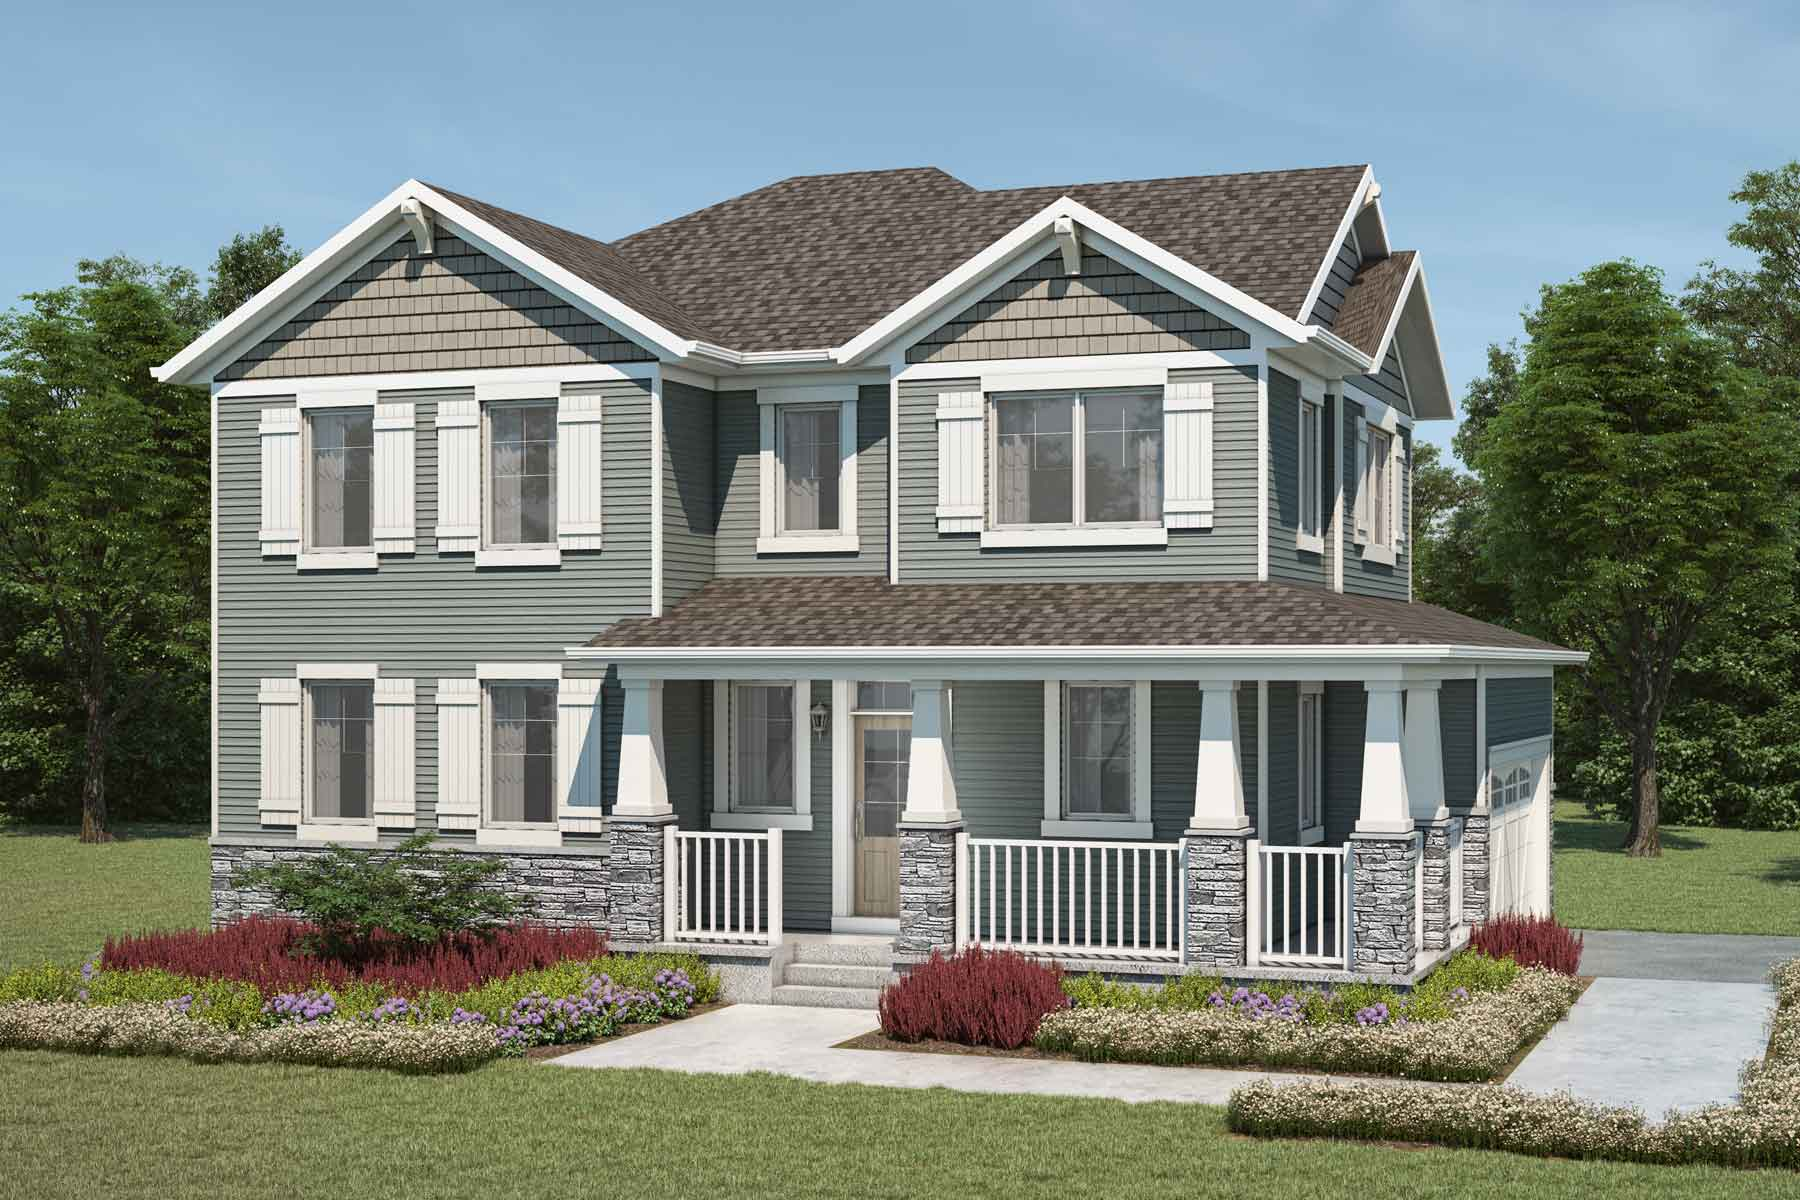 Monarch Plan craftsman_carrington_monarch at Carrington in Calgary Alberta by Mattamy Homes